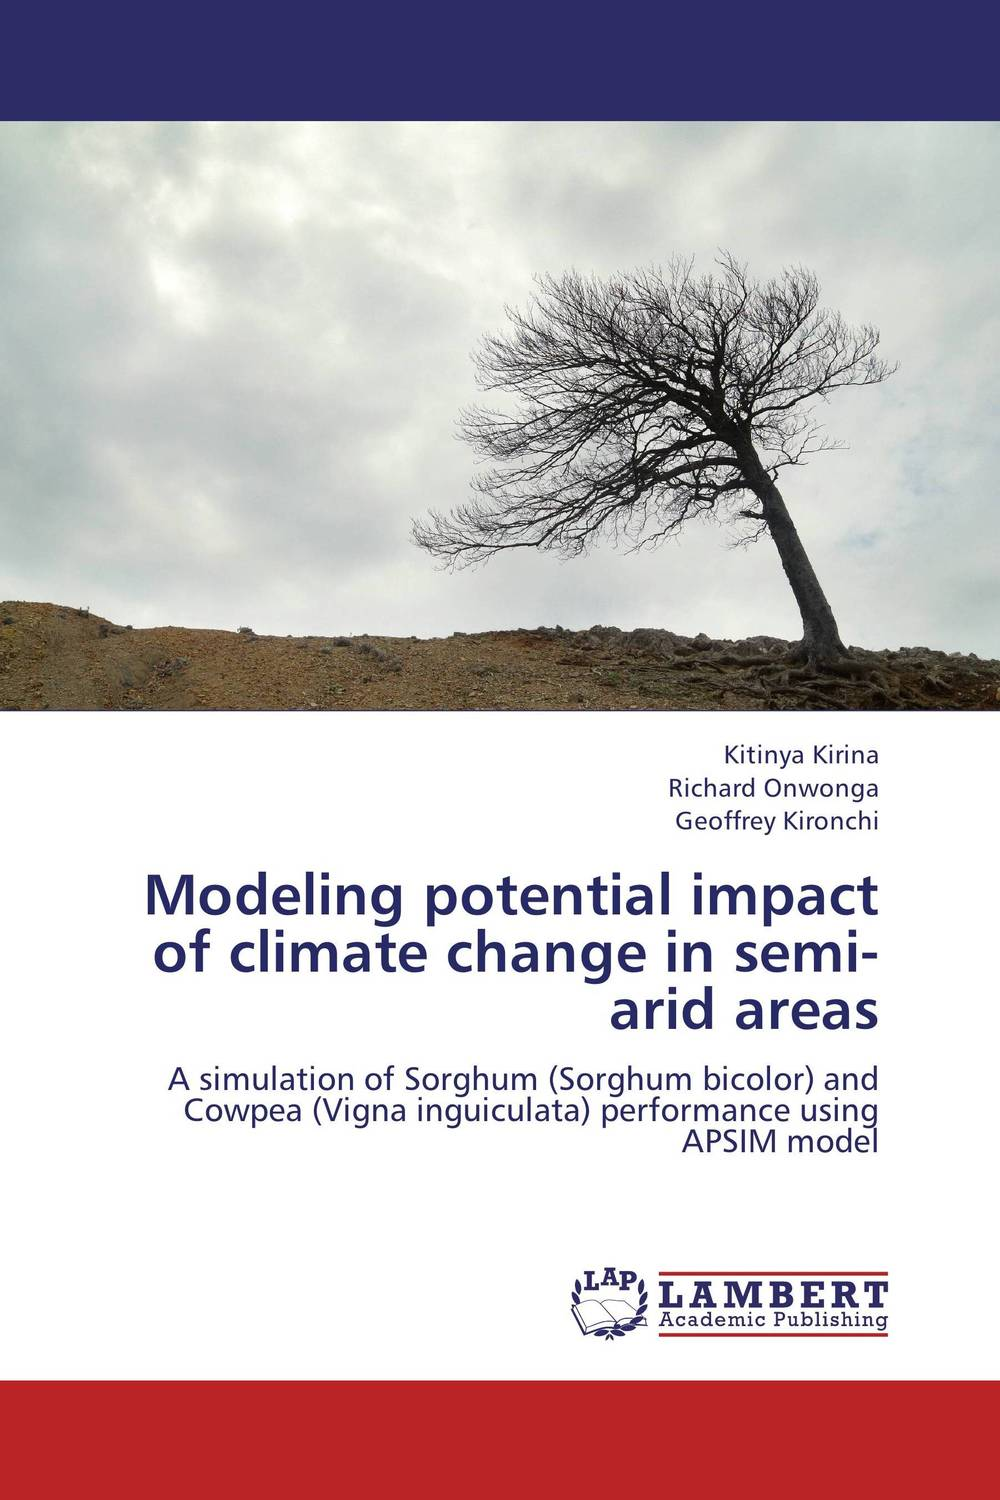 Modeling potential impact of climate change in semi-arid areas climate change mitigation and carbon trade in kenya